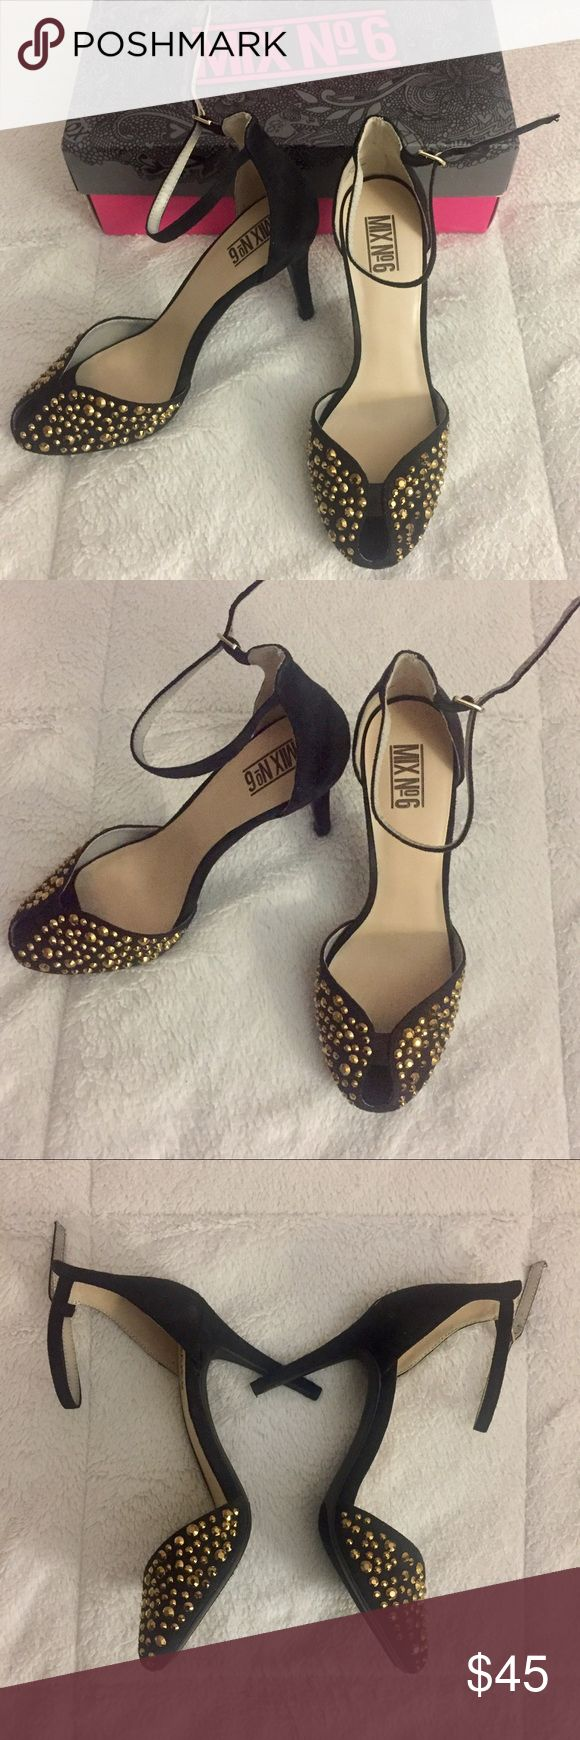 Black sandals at dsw - Nwt Mixno6 Gold Stud Black Heels Brand New With Box Woman S 8 1 2